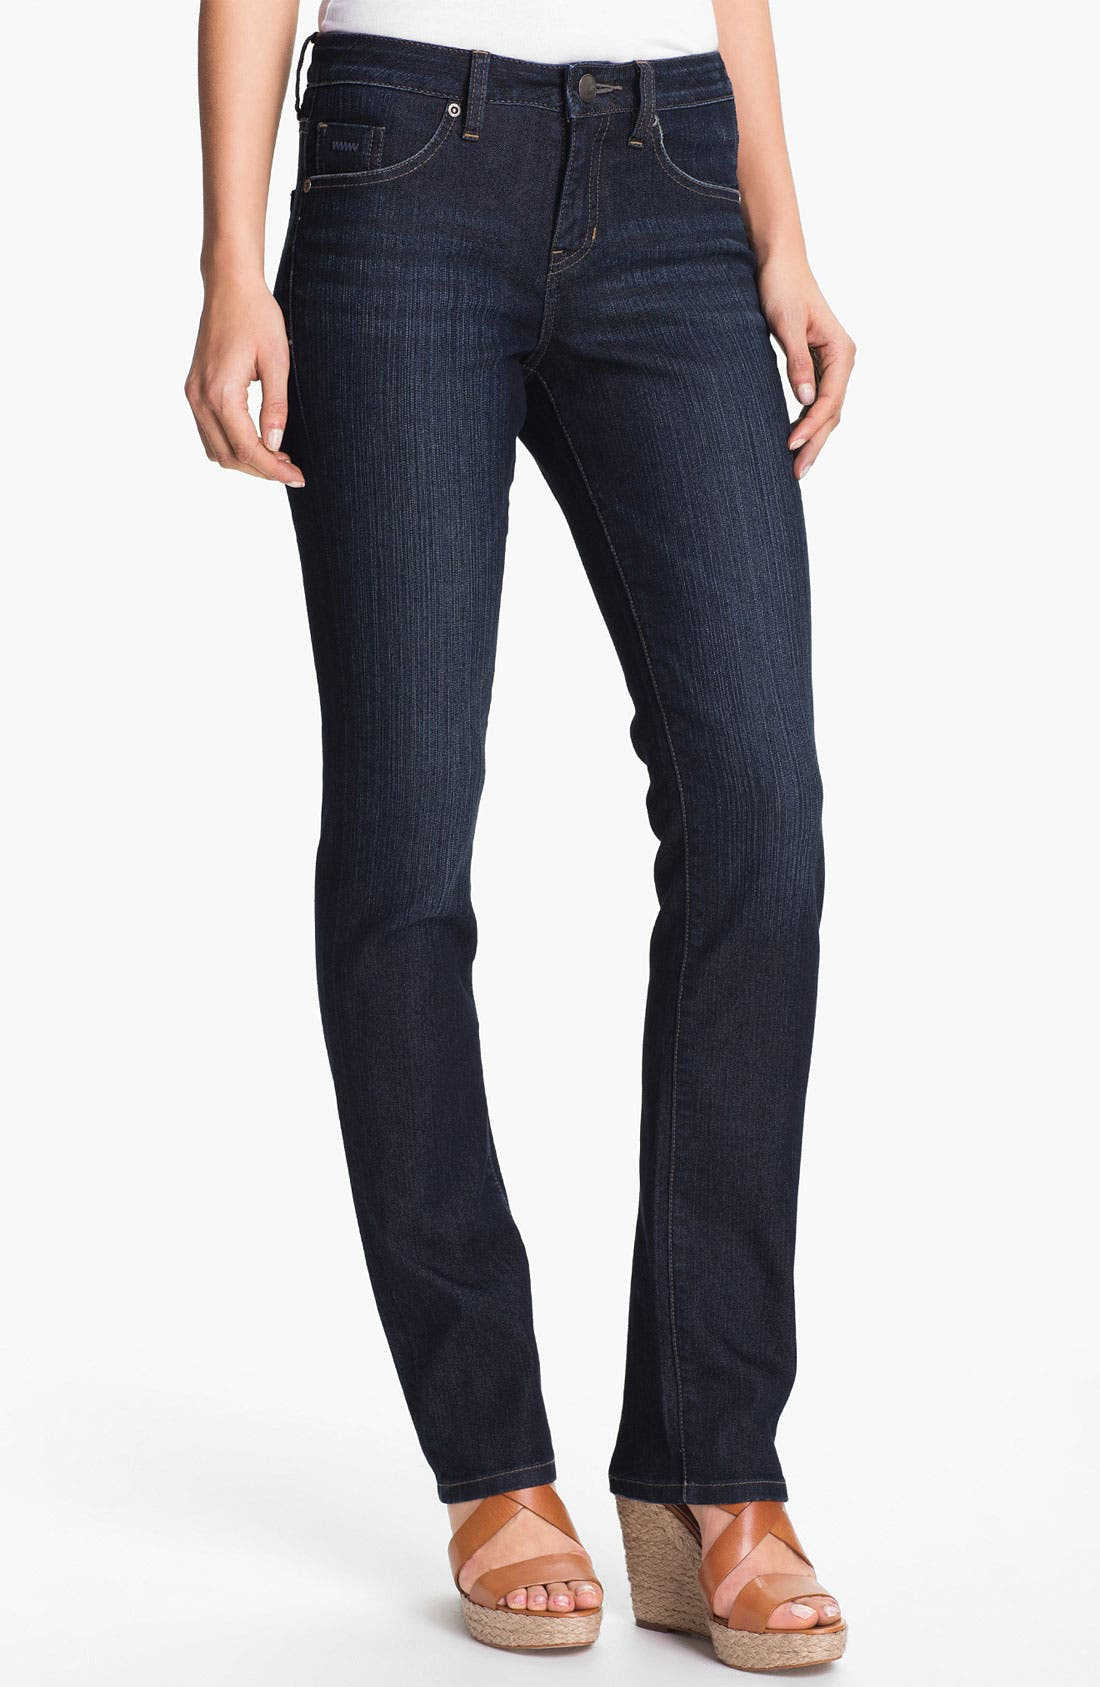 Alternate Image 1 Selected - Jag Jeans 'Jackson' Straight Leg Slub Denim Jeans